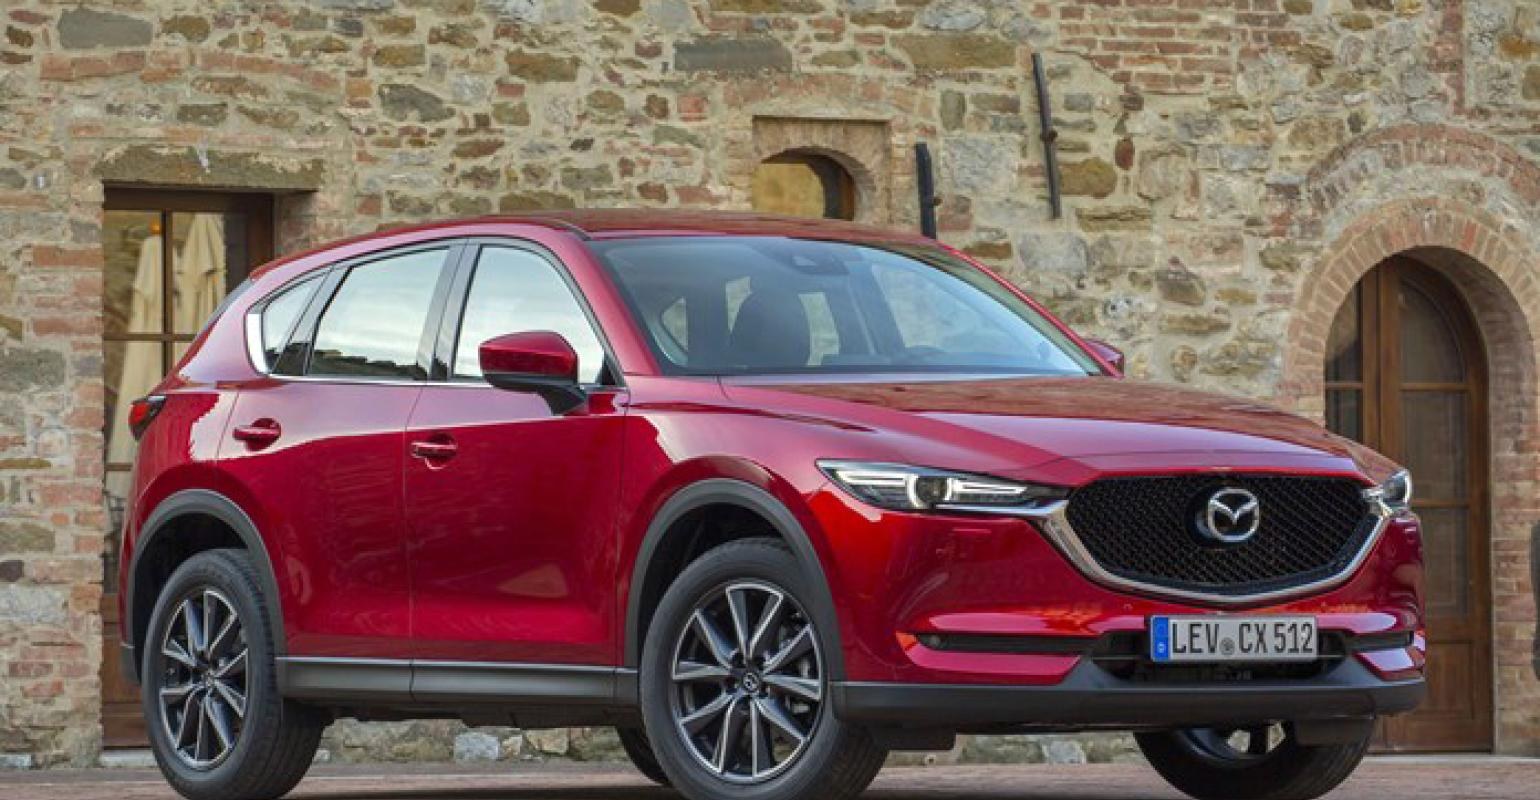 Spanish Customers Prefer Gasoline Version Of Refreshed Mazda Cx5